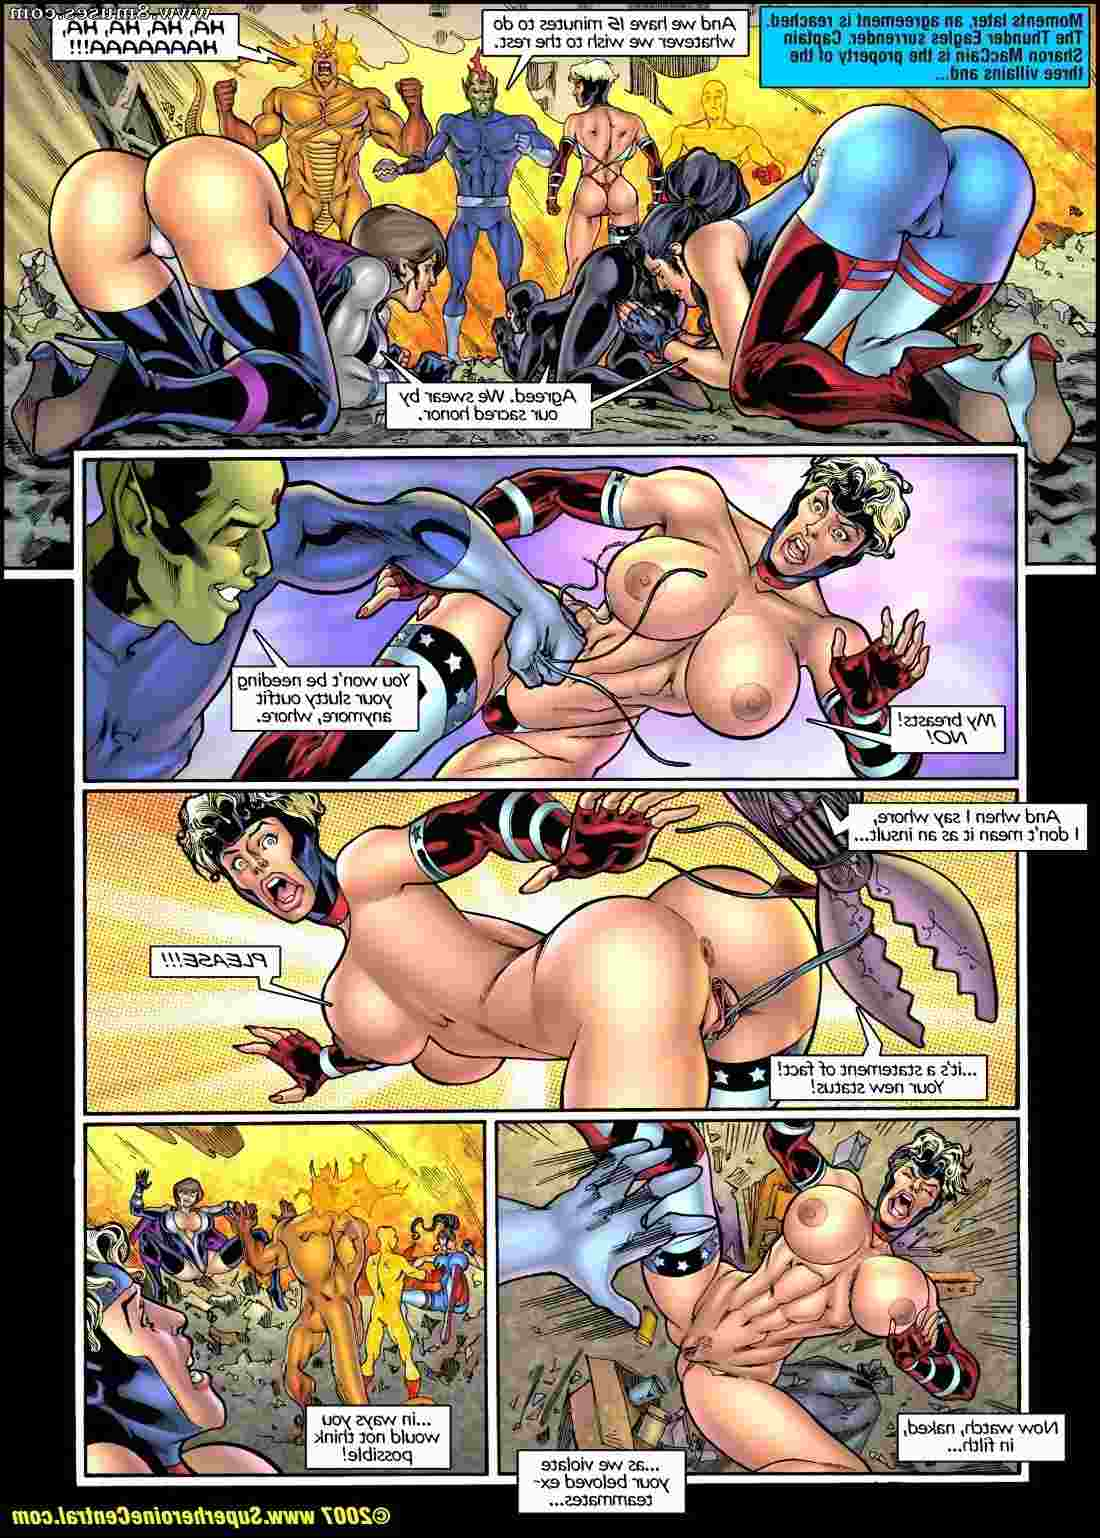 SuperHeroineComixxx/Freedom-Stars-in-Cream-of-the-Crop Freedom_Stars_in_Cream_of_the_Crop__8muses_-_Sex_and_Porn_Comics_40.jpg